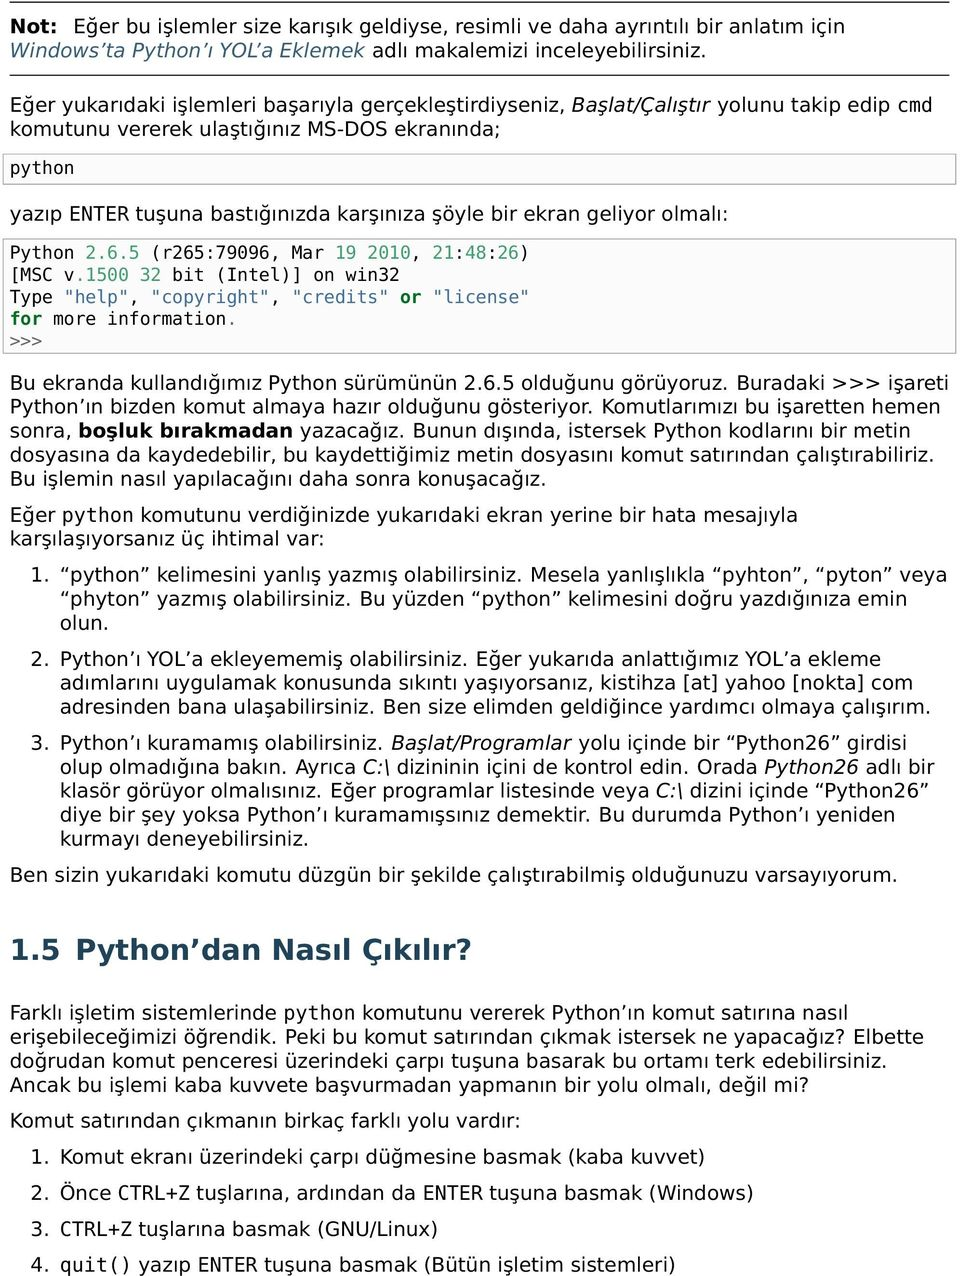 "bir ekran geliyor olmalı: Python 2.6.5 (r265:79096, Mar 19 2010, 21:48:26) [MSC v.1500 32 bit (Intel)] on win32 Type ""help"", ""copyright"", ""credits"" or ""license"" for more information."